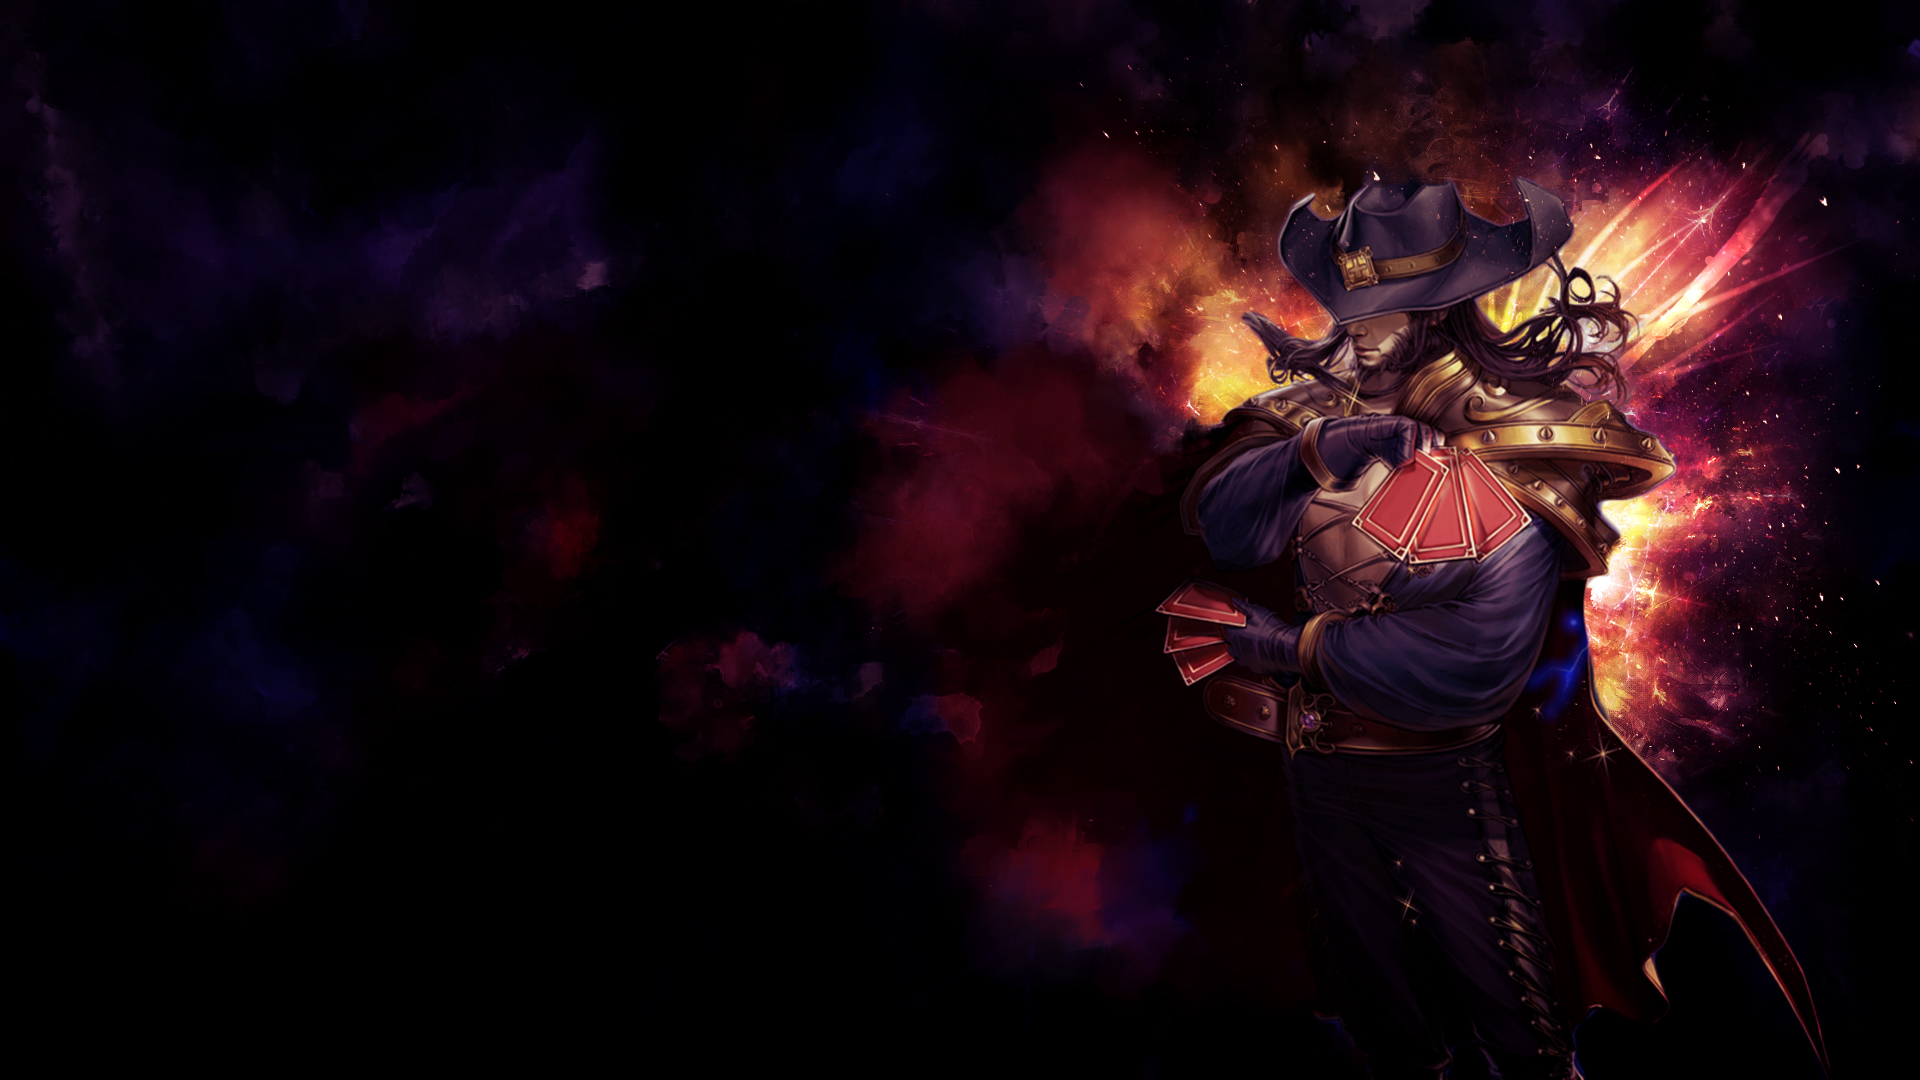 twisted fate fan art league of legends wallpapers